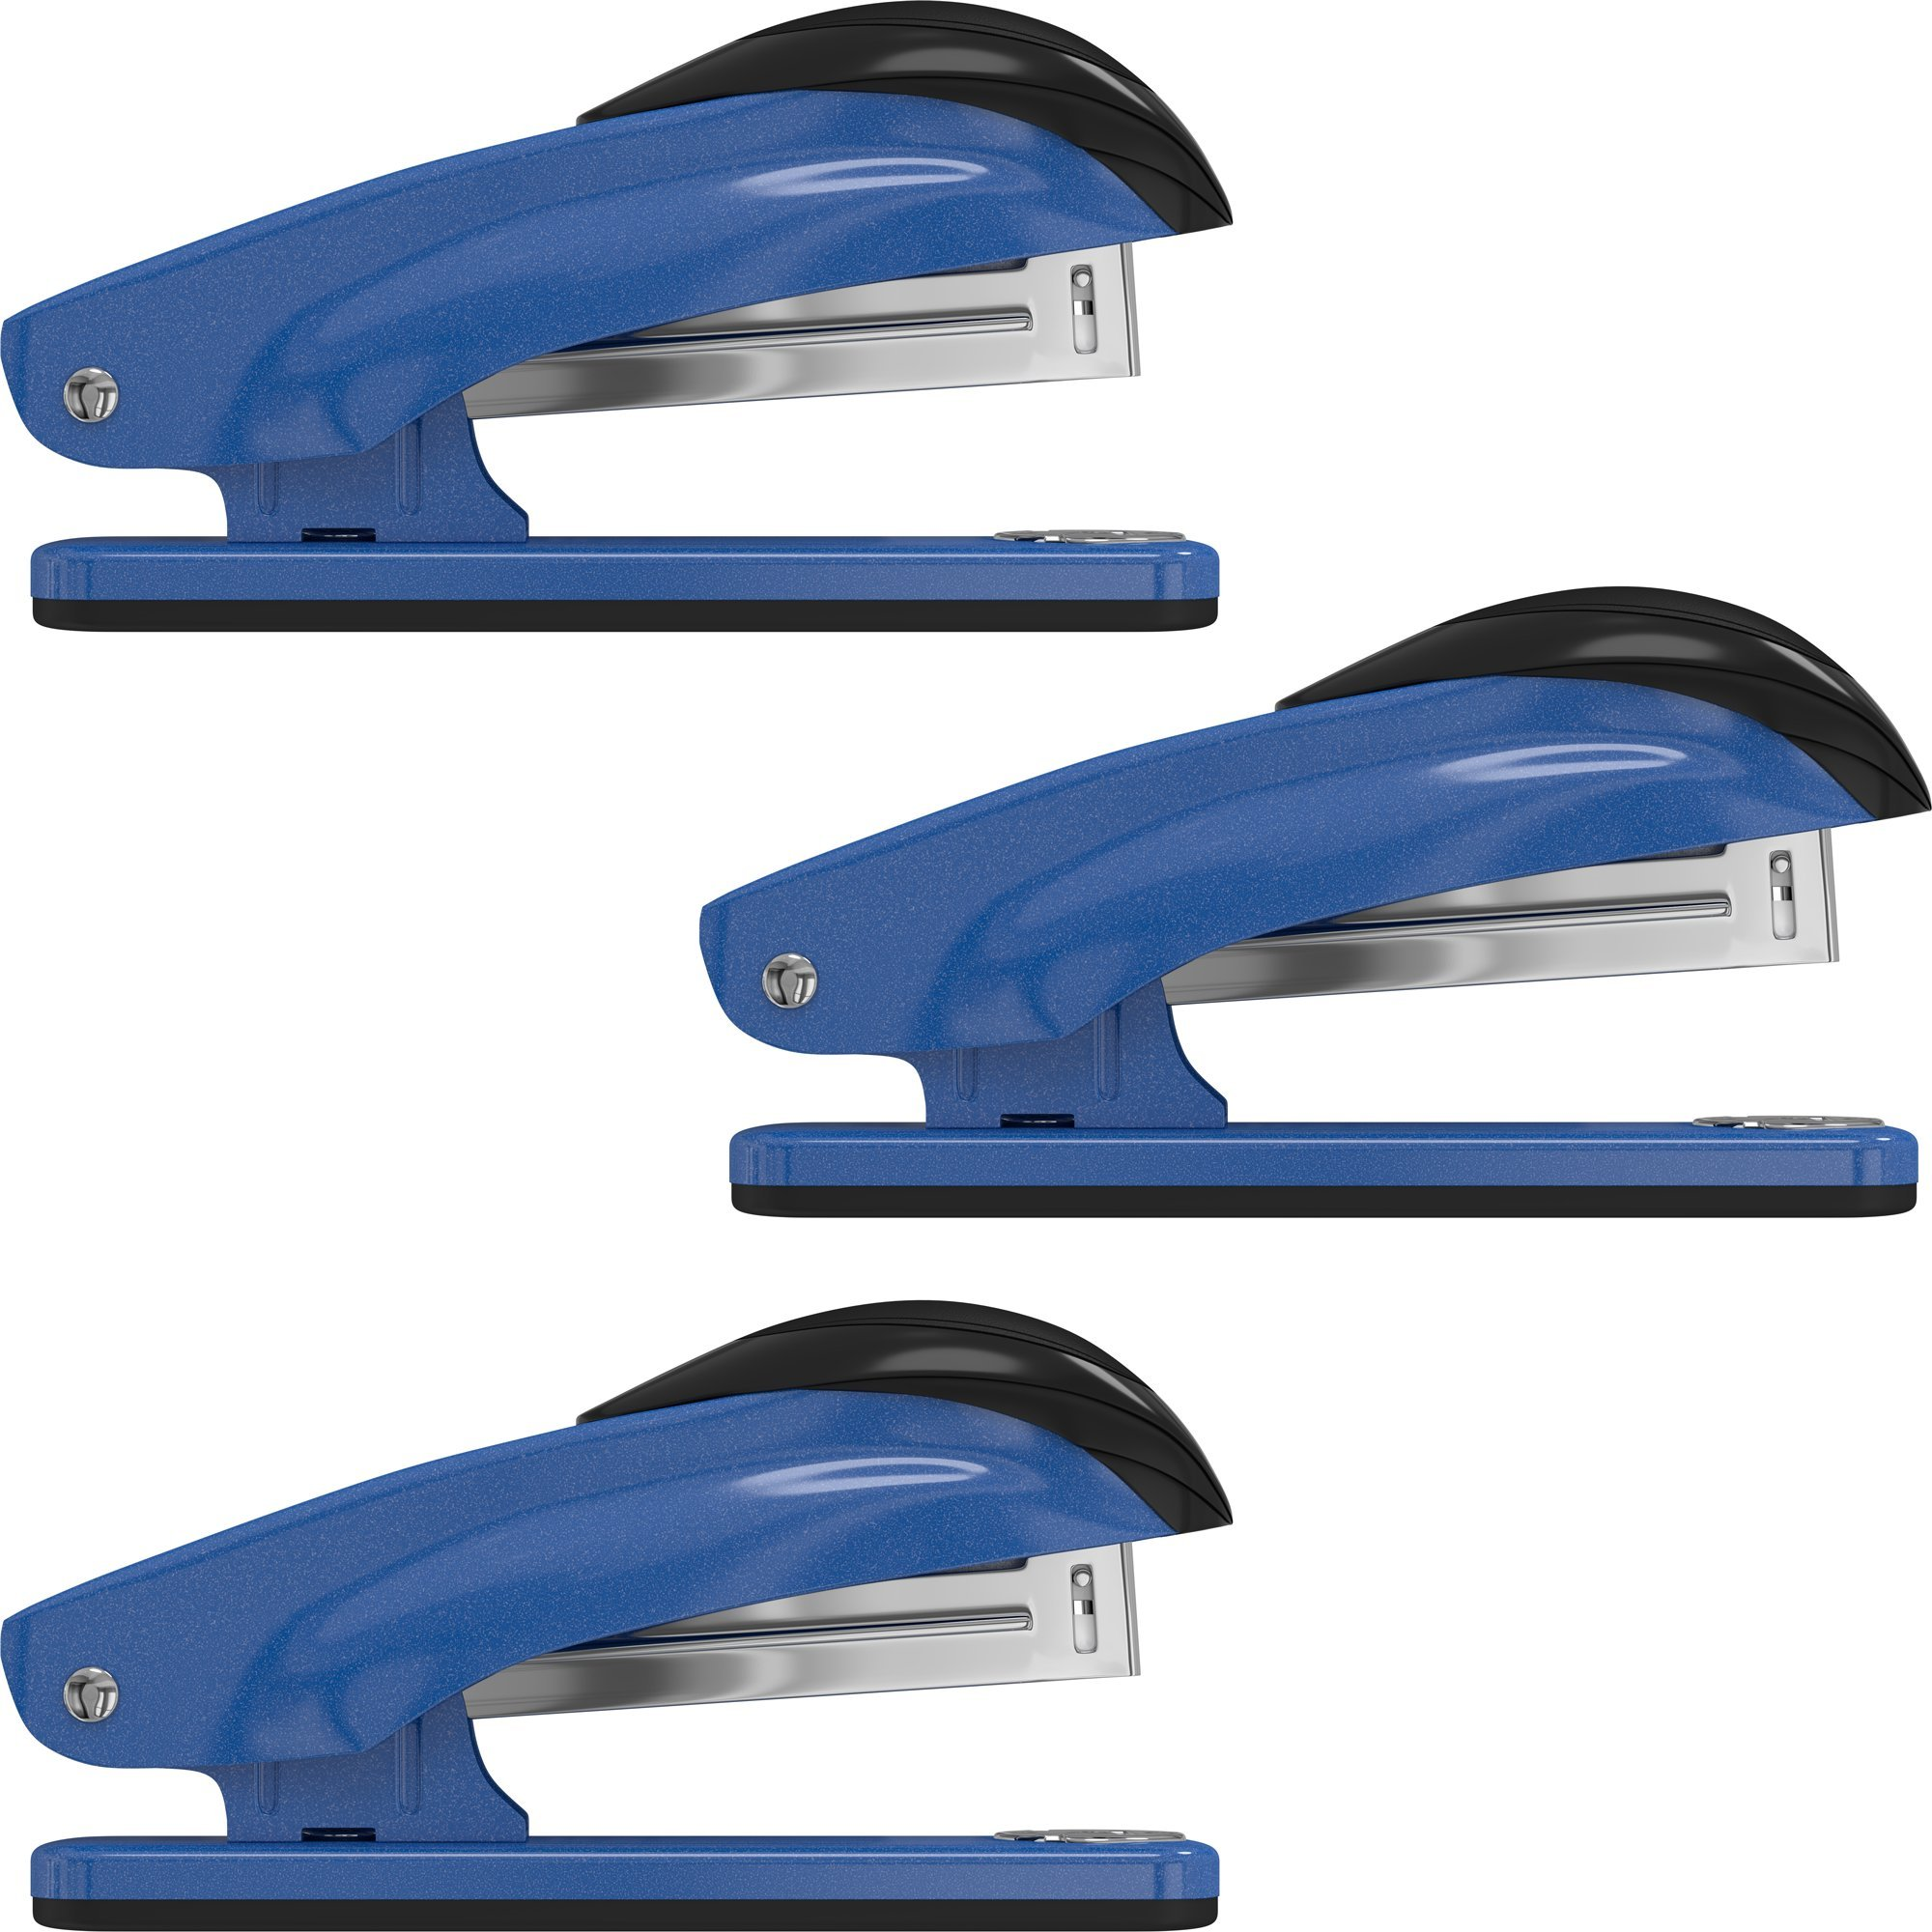 Desk Stapler Set (3 Pack) for Office, School and Home - Small, Compact, Effortless & Ergonomic Metal Design - 20 Sheets Standard 24-26/6 Size - Blue